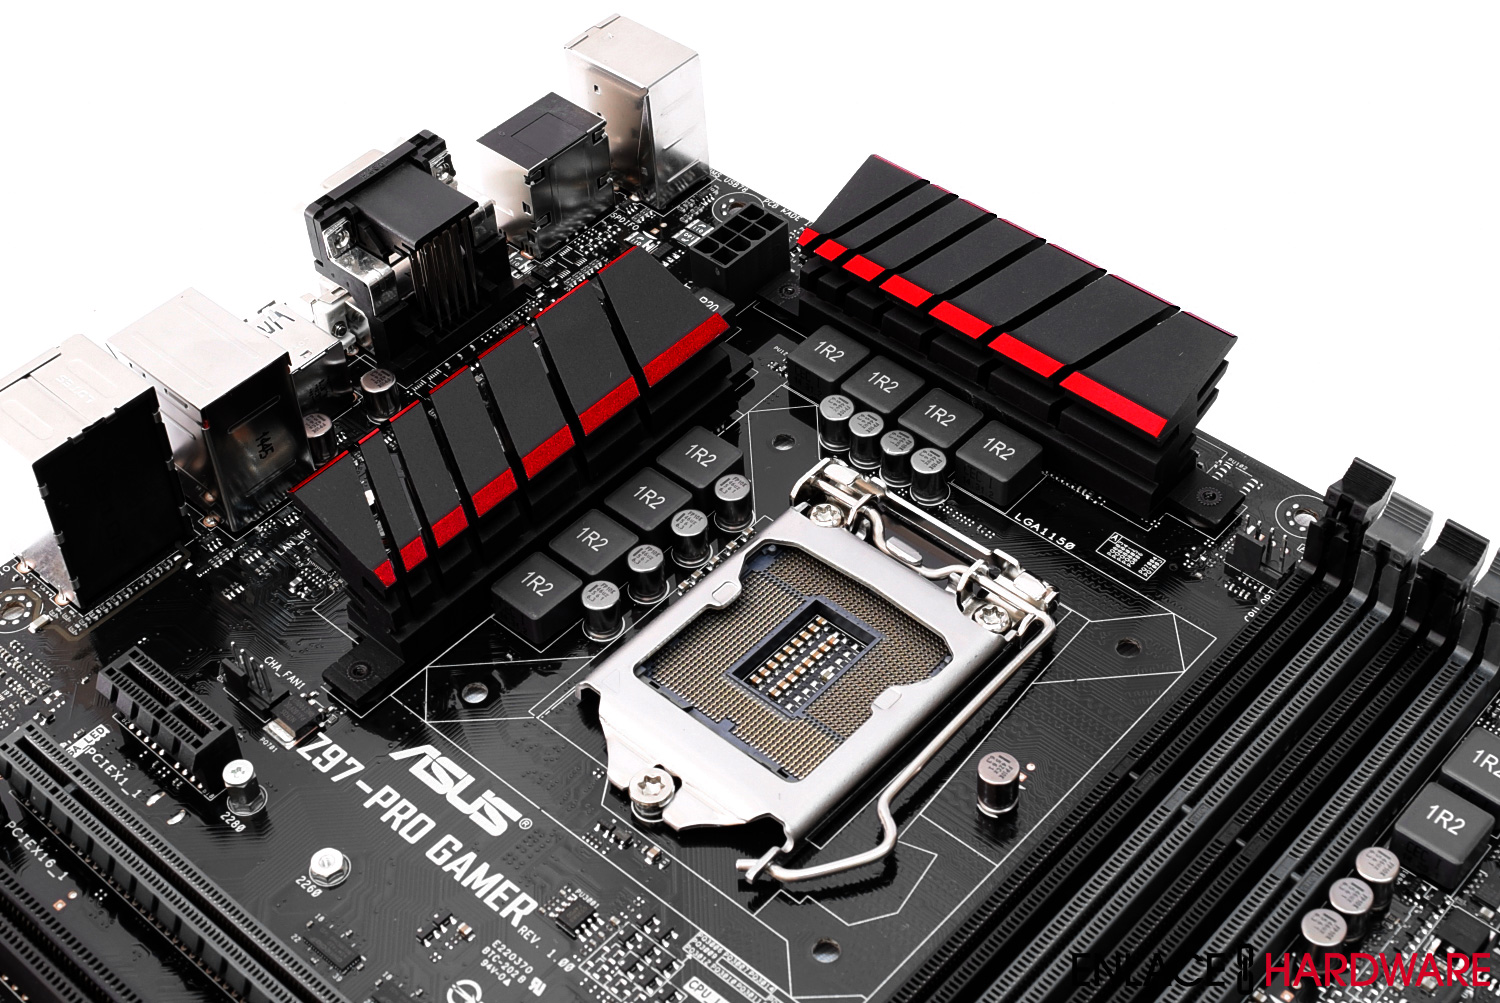 ASUS-Z97-Pro-Gamer-Review-5